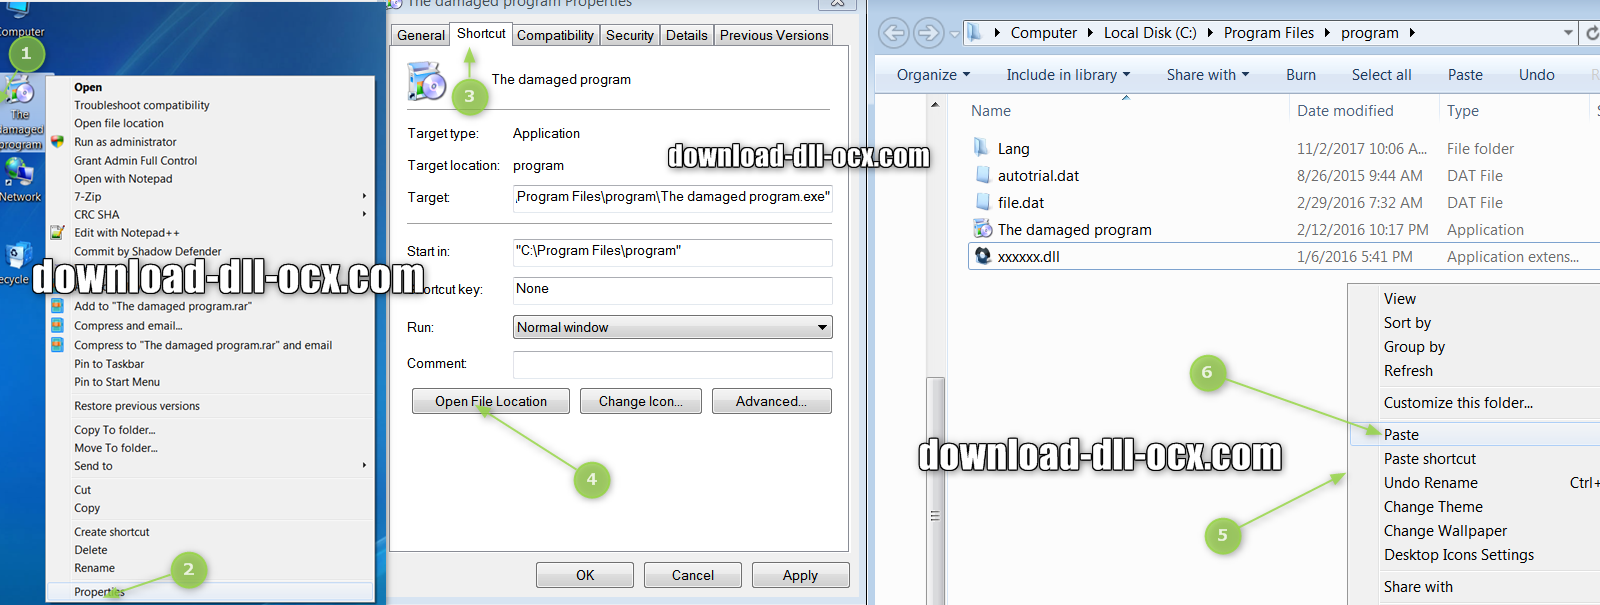 how to install BWCHelpr.dll file? for fix missing